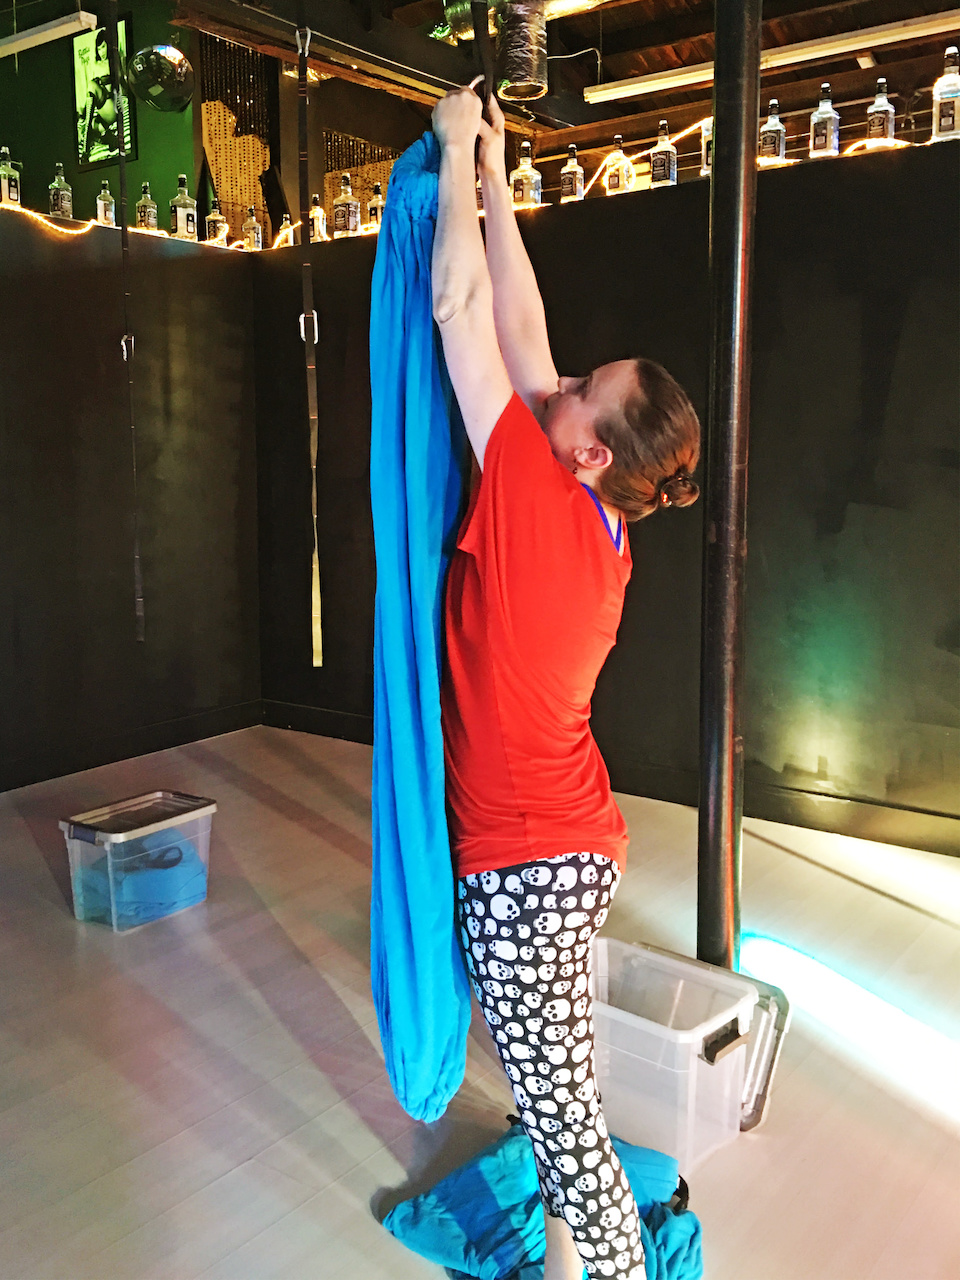 Aerial yoga instructor Christy Rose hangs up fabric slings in preparation for class.